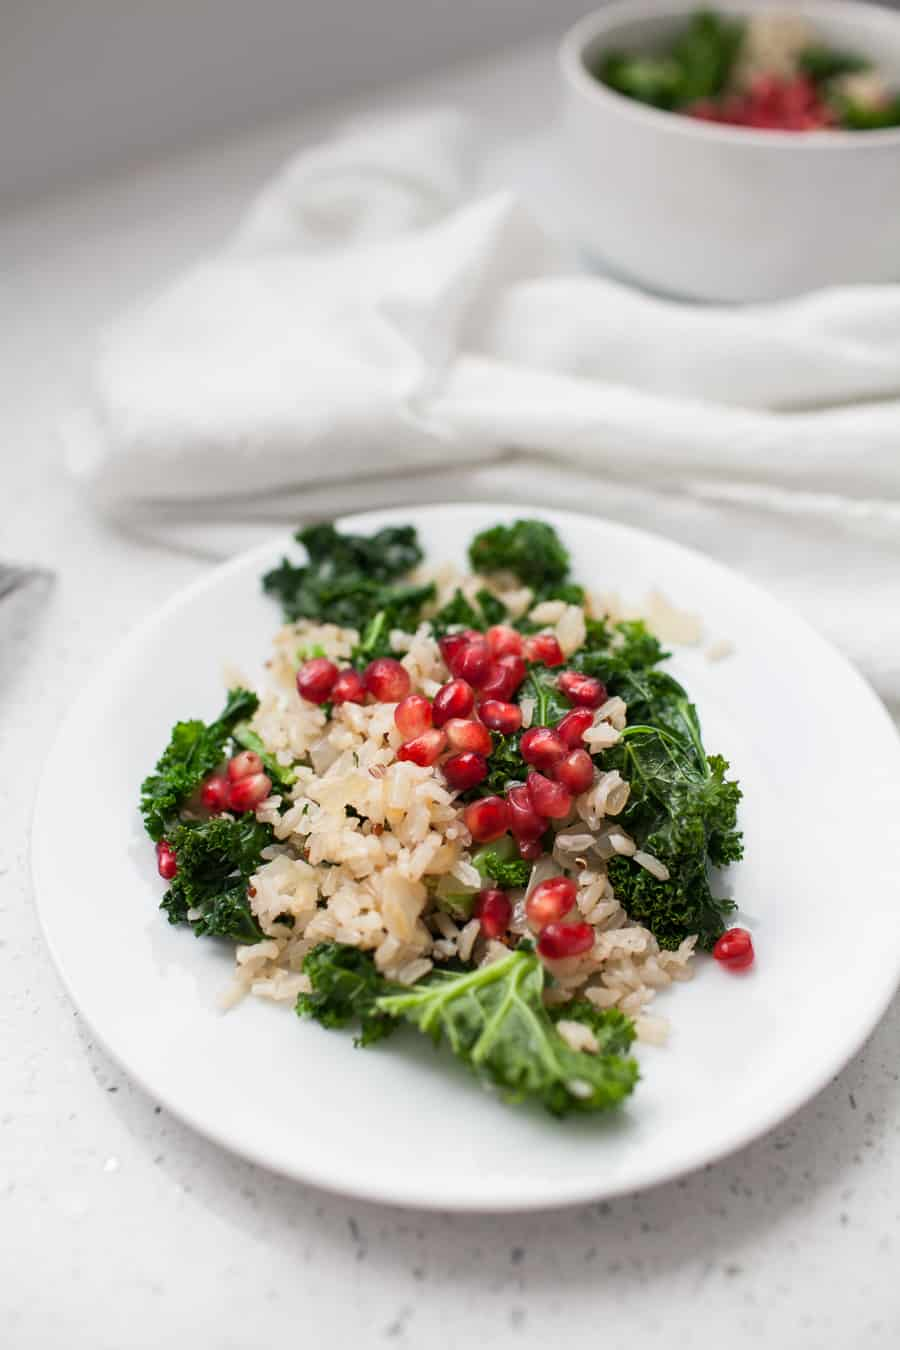 This salad takes less than 10 minutes to make and the flavors are perfectly light and simple for springtime. A Spring Pomegranate Brown Rice Kale Salad is the perfect addition to any spring meal. spring salads | pomegranate recipes | kale salad recipes | kale salad | kale spring salad | rice salad | brown rice salad | brown rice and kale recipes